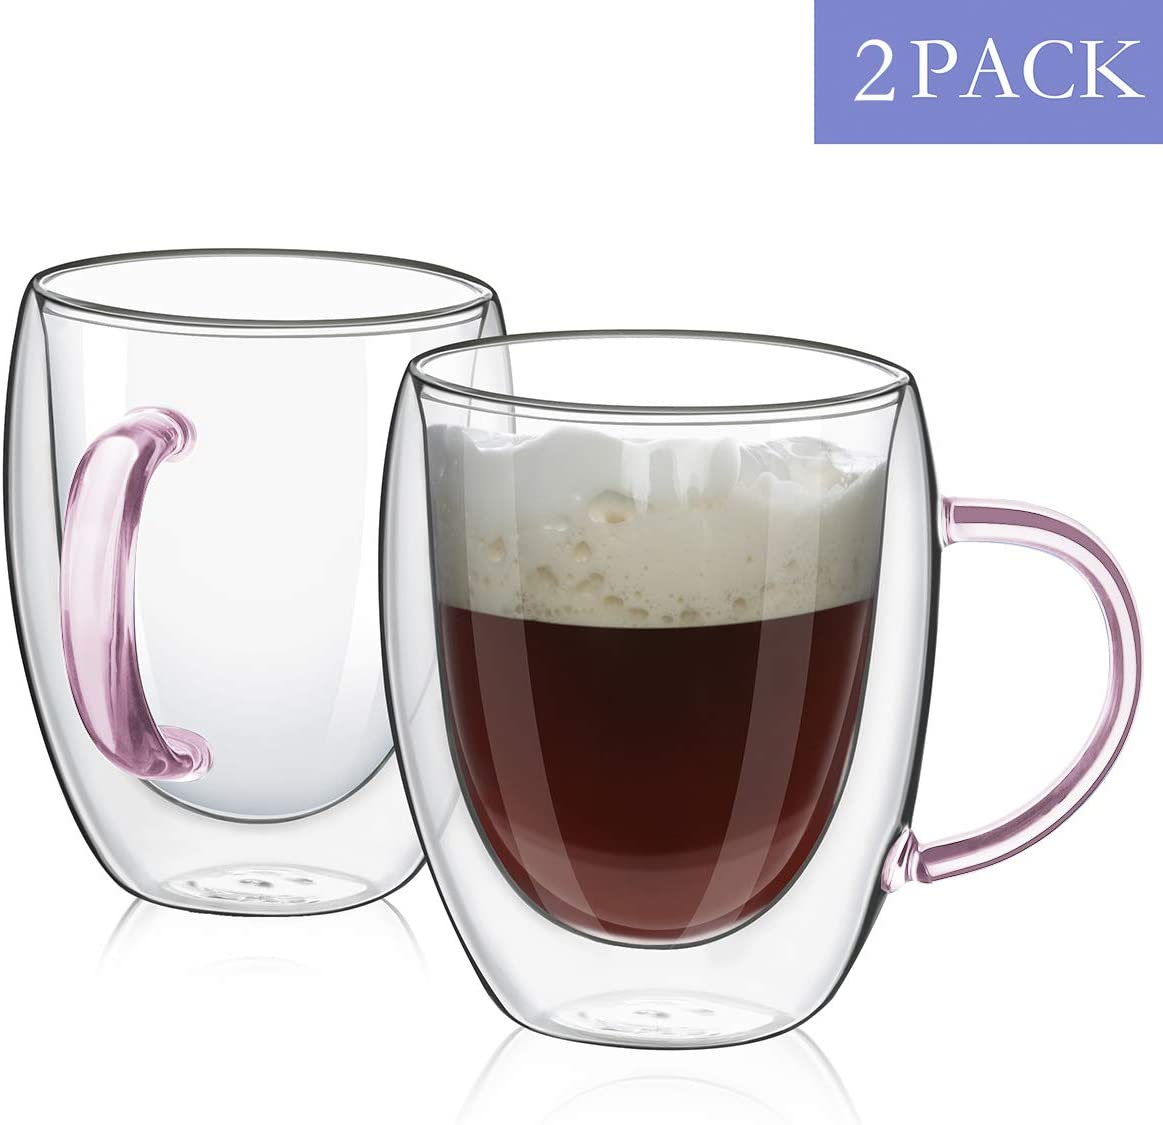 Tea MEWAY Coffee Mugs,Clear Double Wall Insulated Glass with Color Handle for Coffee Latte Blue, 2 Cappuccino